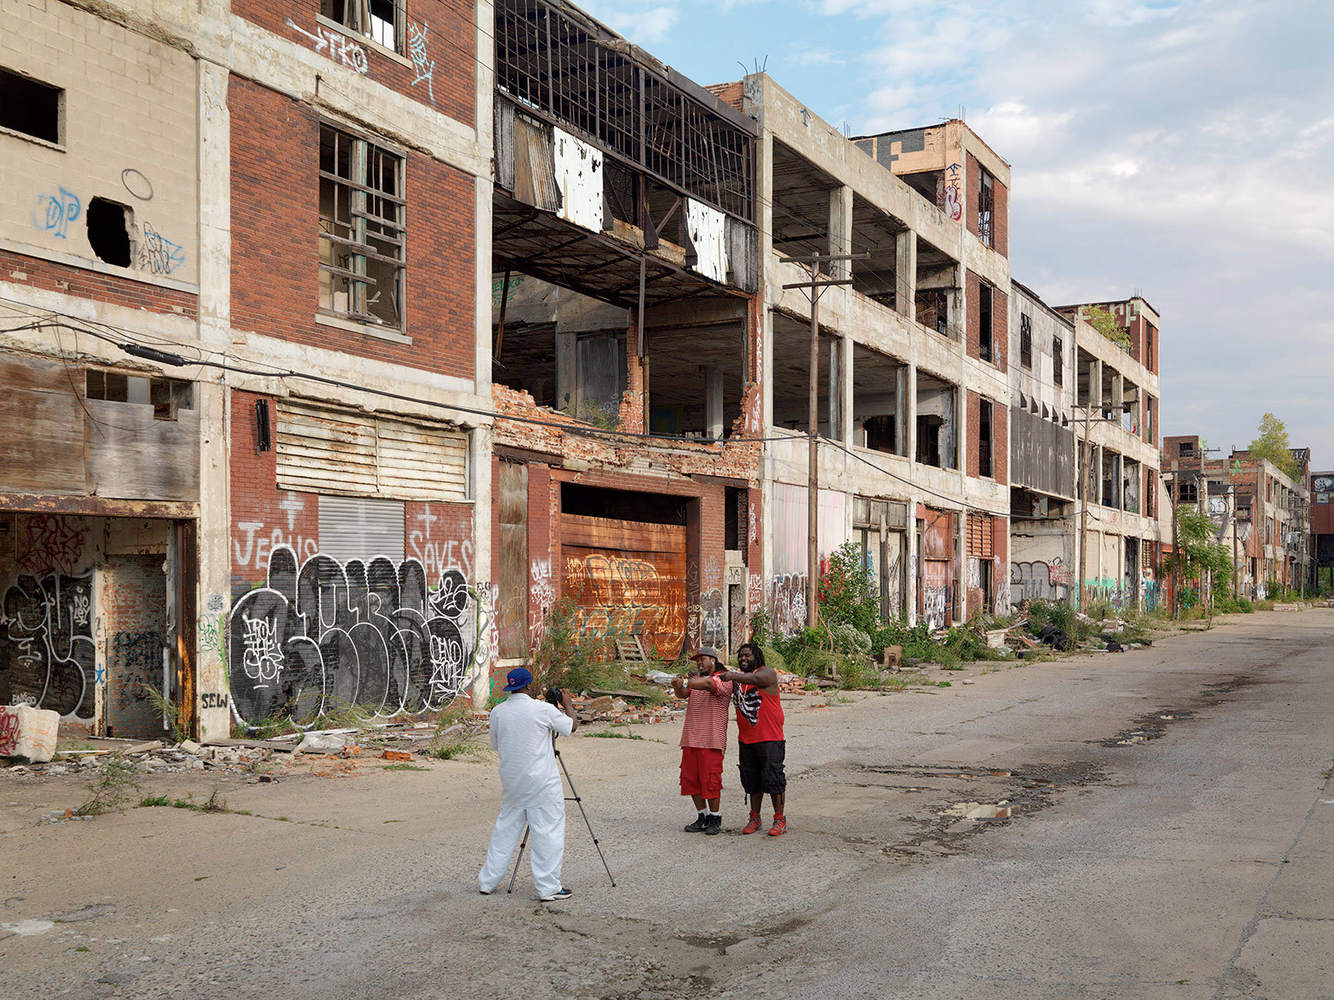 Two Rappers Making a Youtube Music Video and using the abandoned Packard Automotive Plant as a backdrop, Detroit 2014